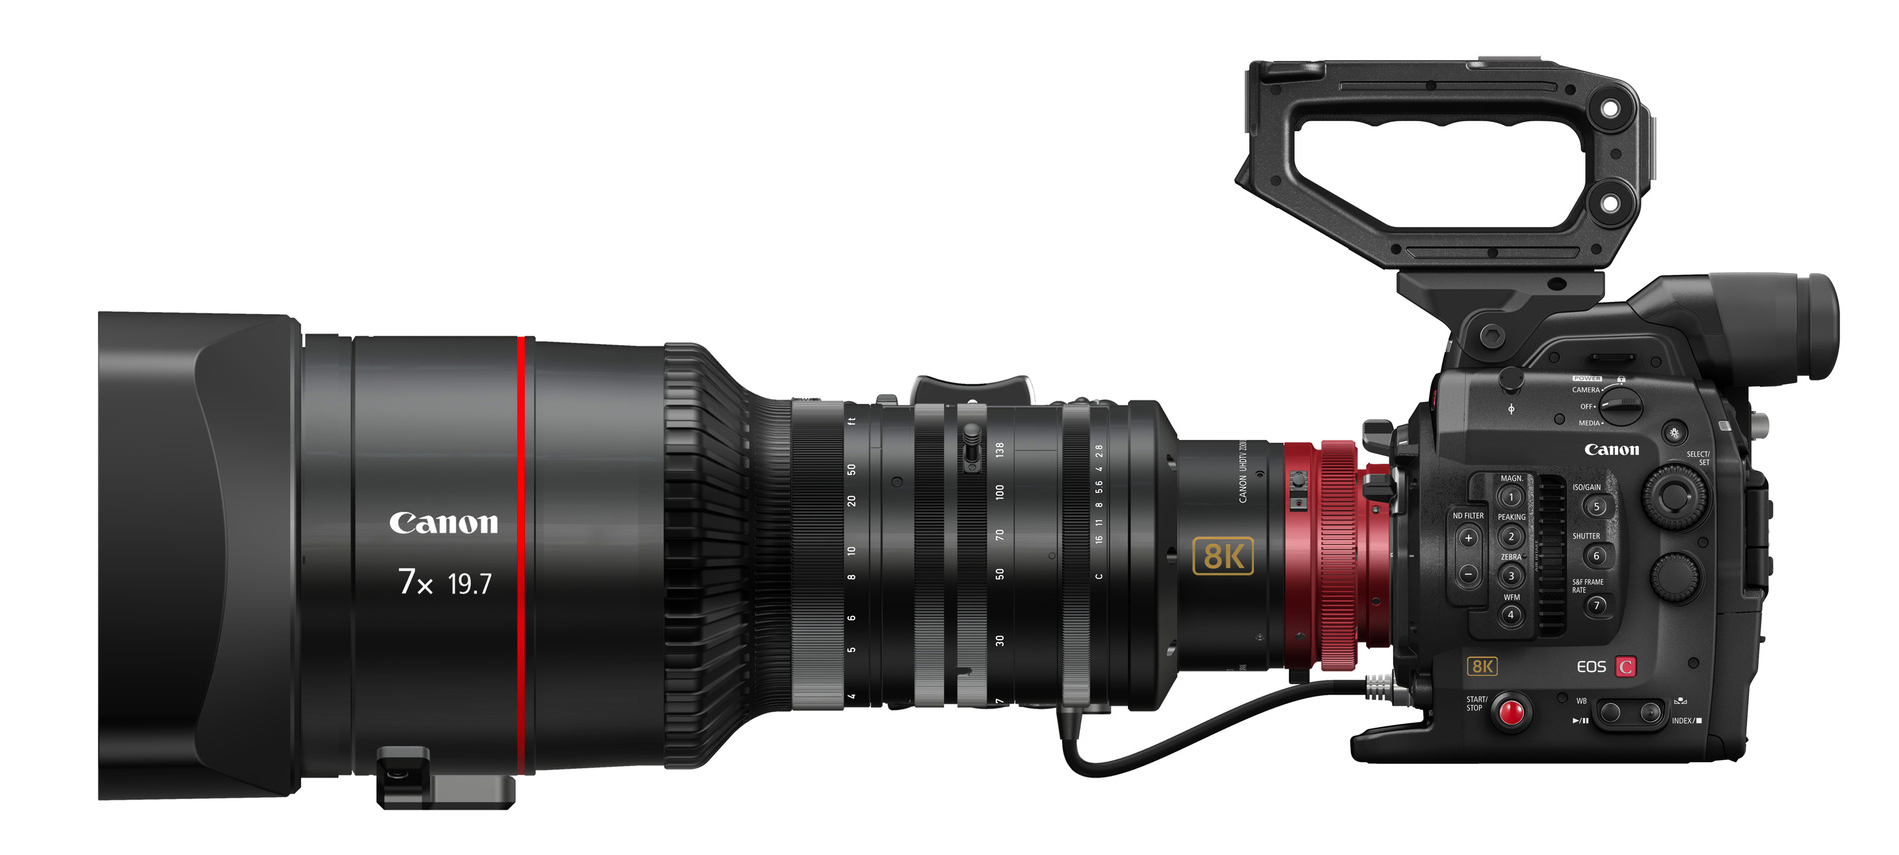 A render of a possibile 8k Canon EOS camera with 8k lens.